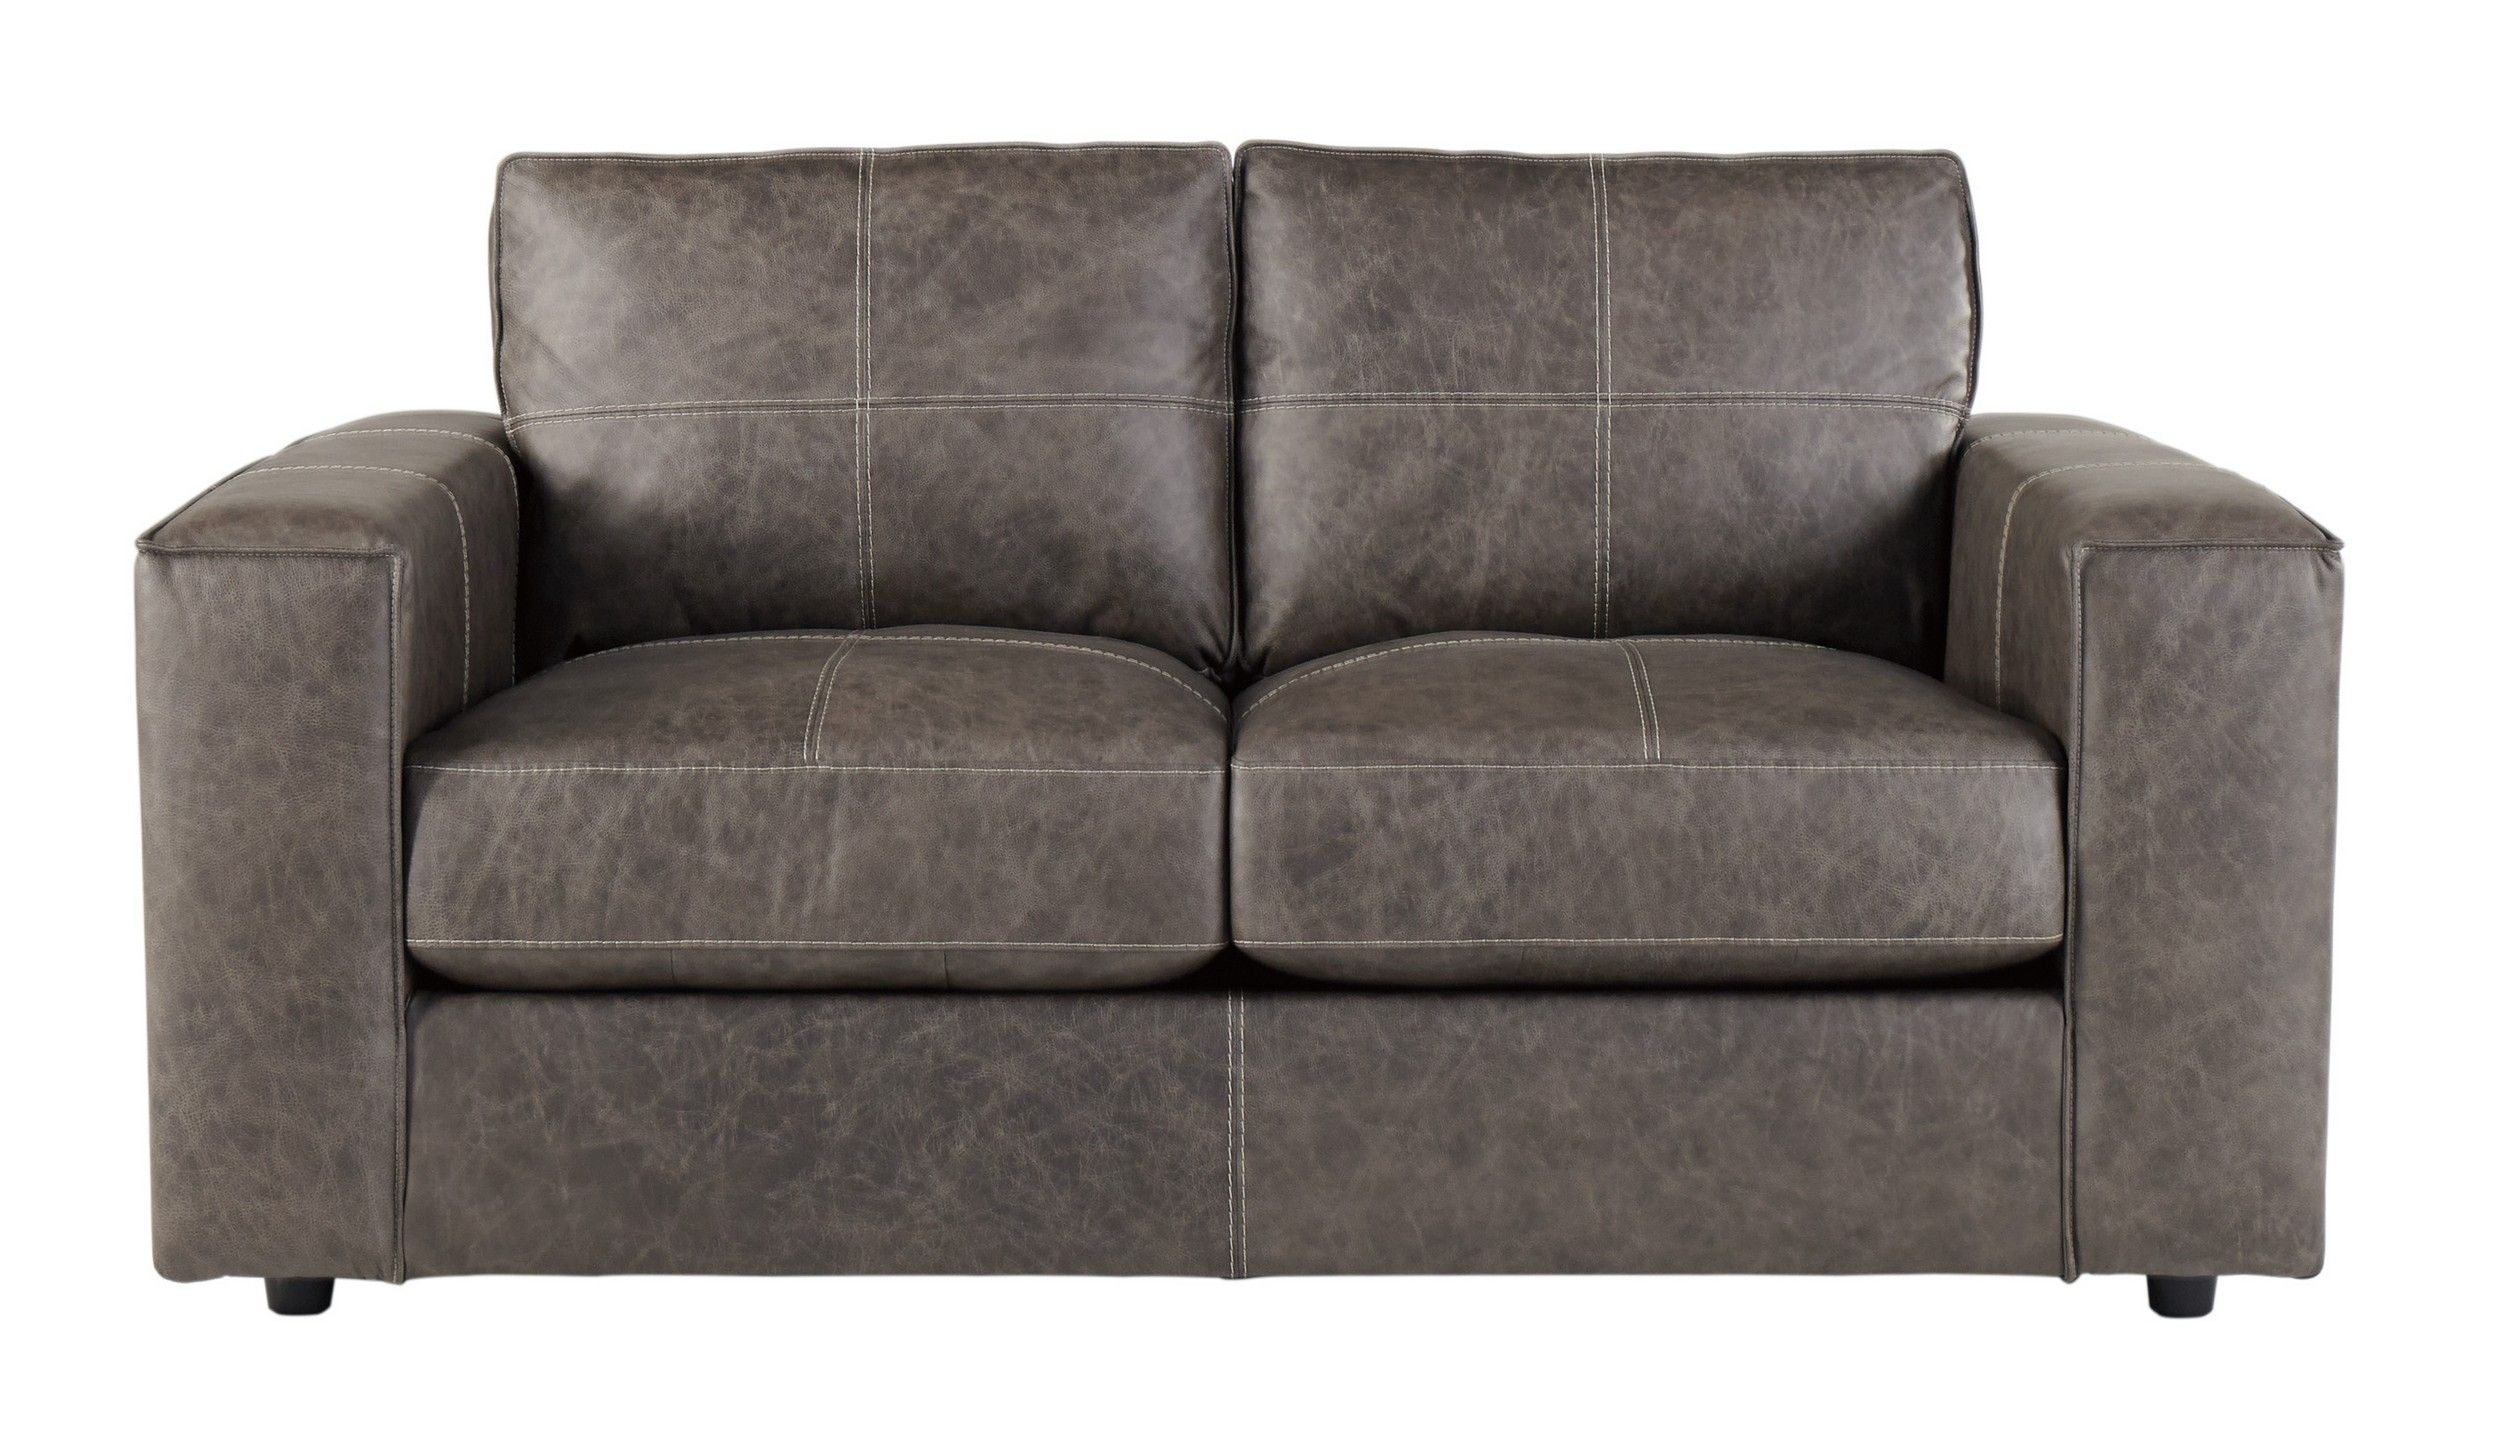 Lowest Price On Signature Design By Ashley Trembolt Smoke Loveseat 2890135 Shop Today Ashley Furniture Ashley Furniture Living Room Love Seat